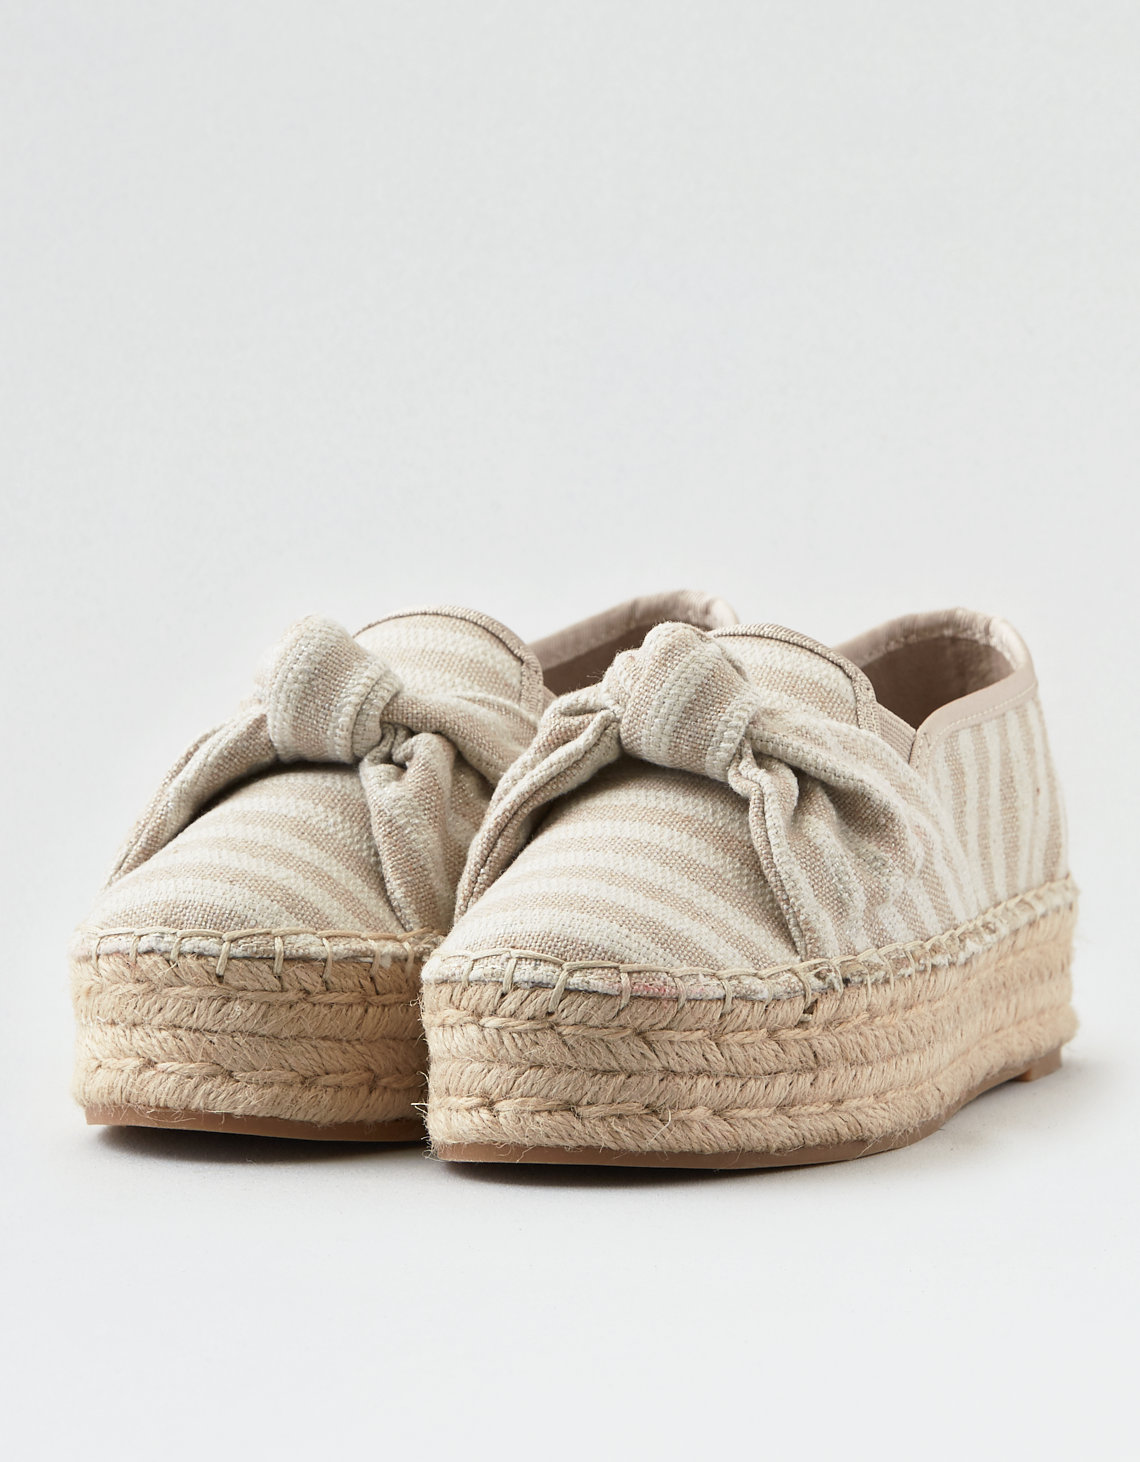 Circus By Sam Edelman Columbia Espadrilles Shoes